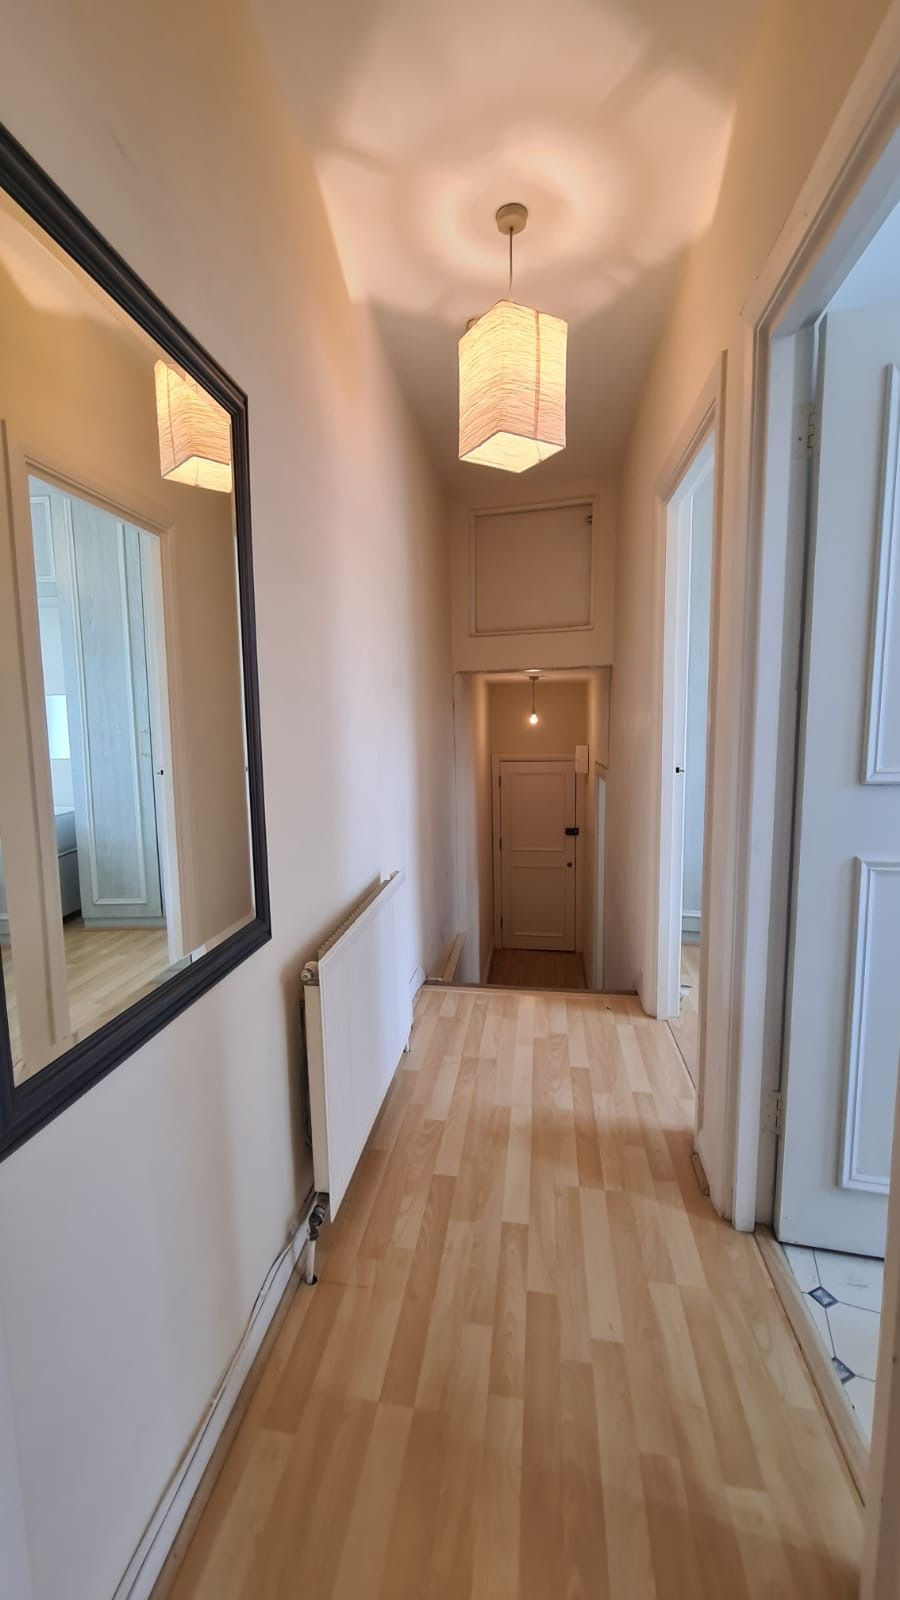 2 bedroom flat flat/apartment To Let in London - Hallway